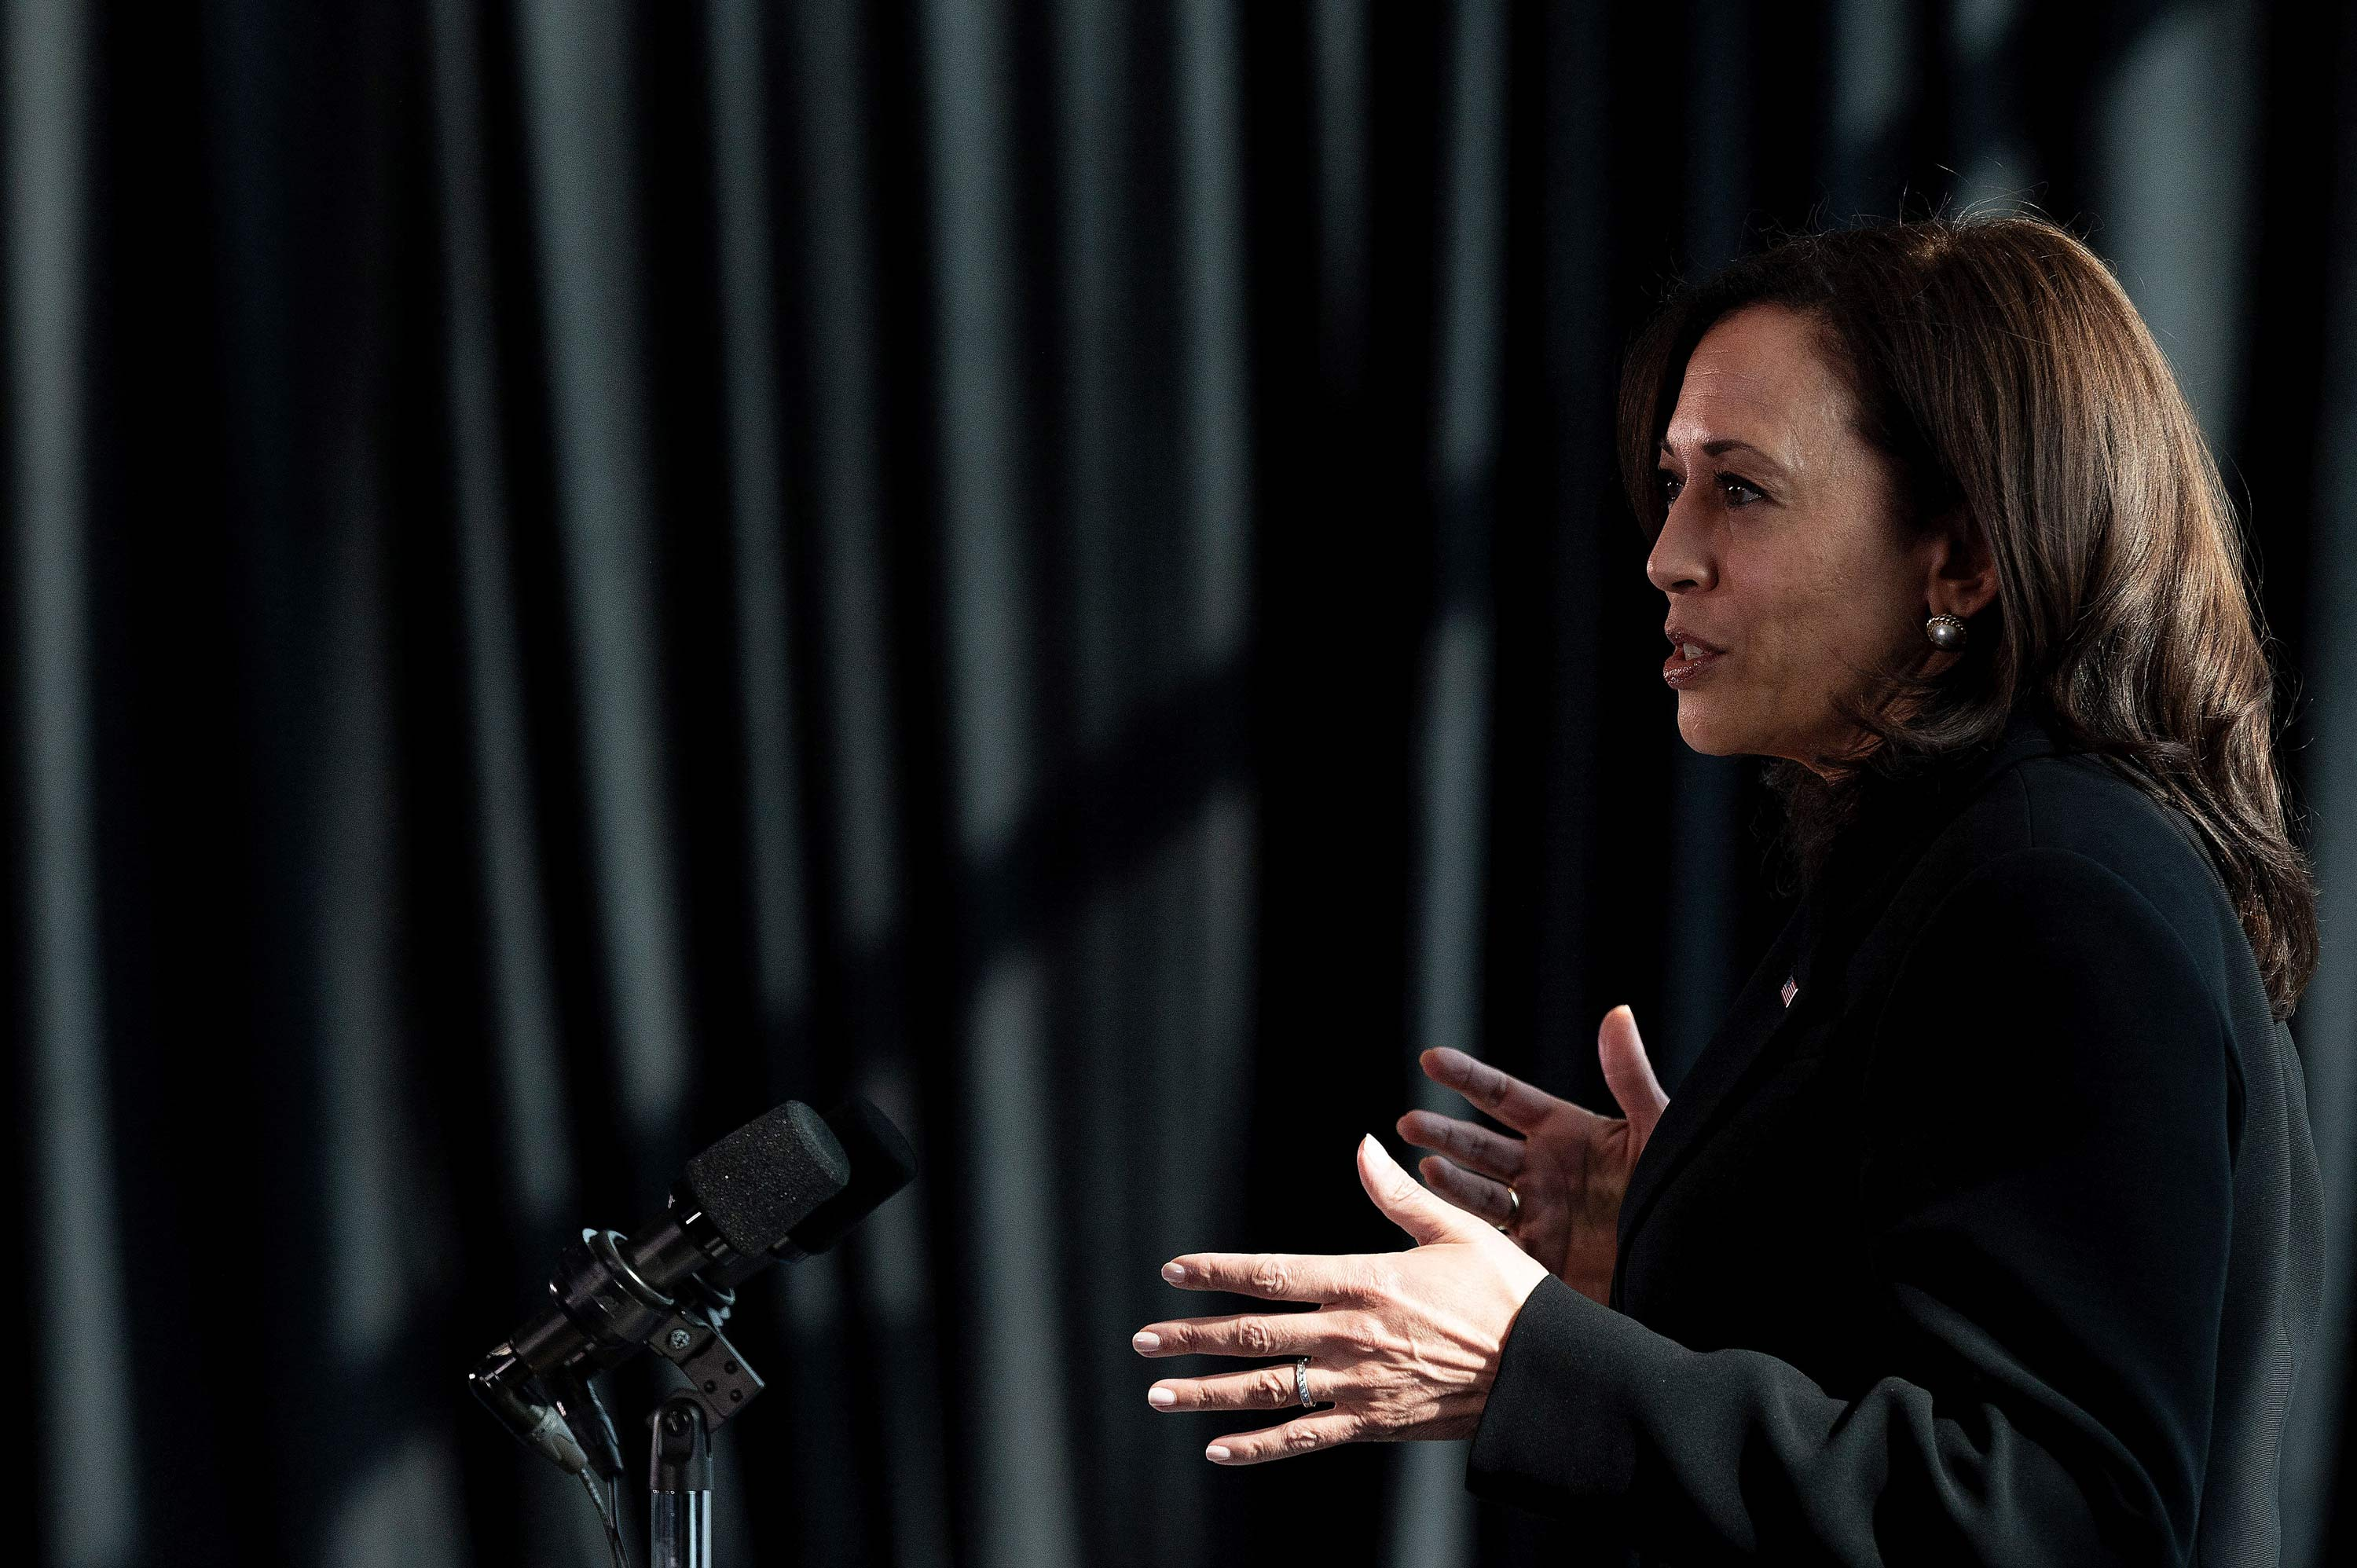 Vice President Kamala Harris speaks during a press conference at the Sofitel Mexico City Reforma in Mexico City on June 8.